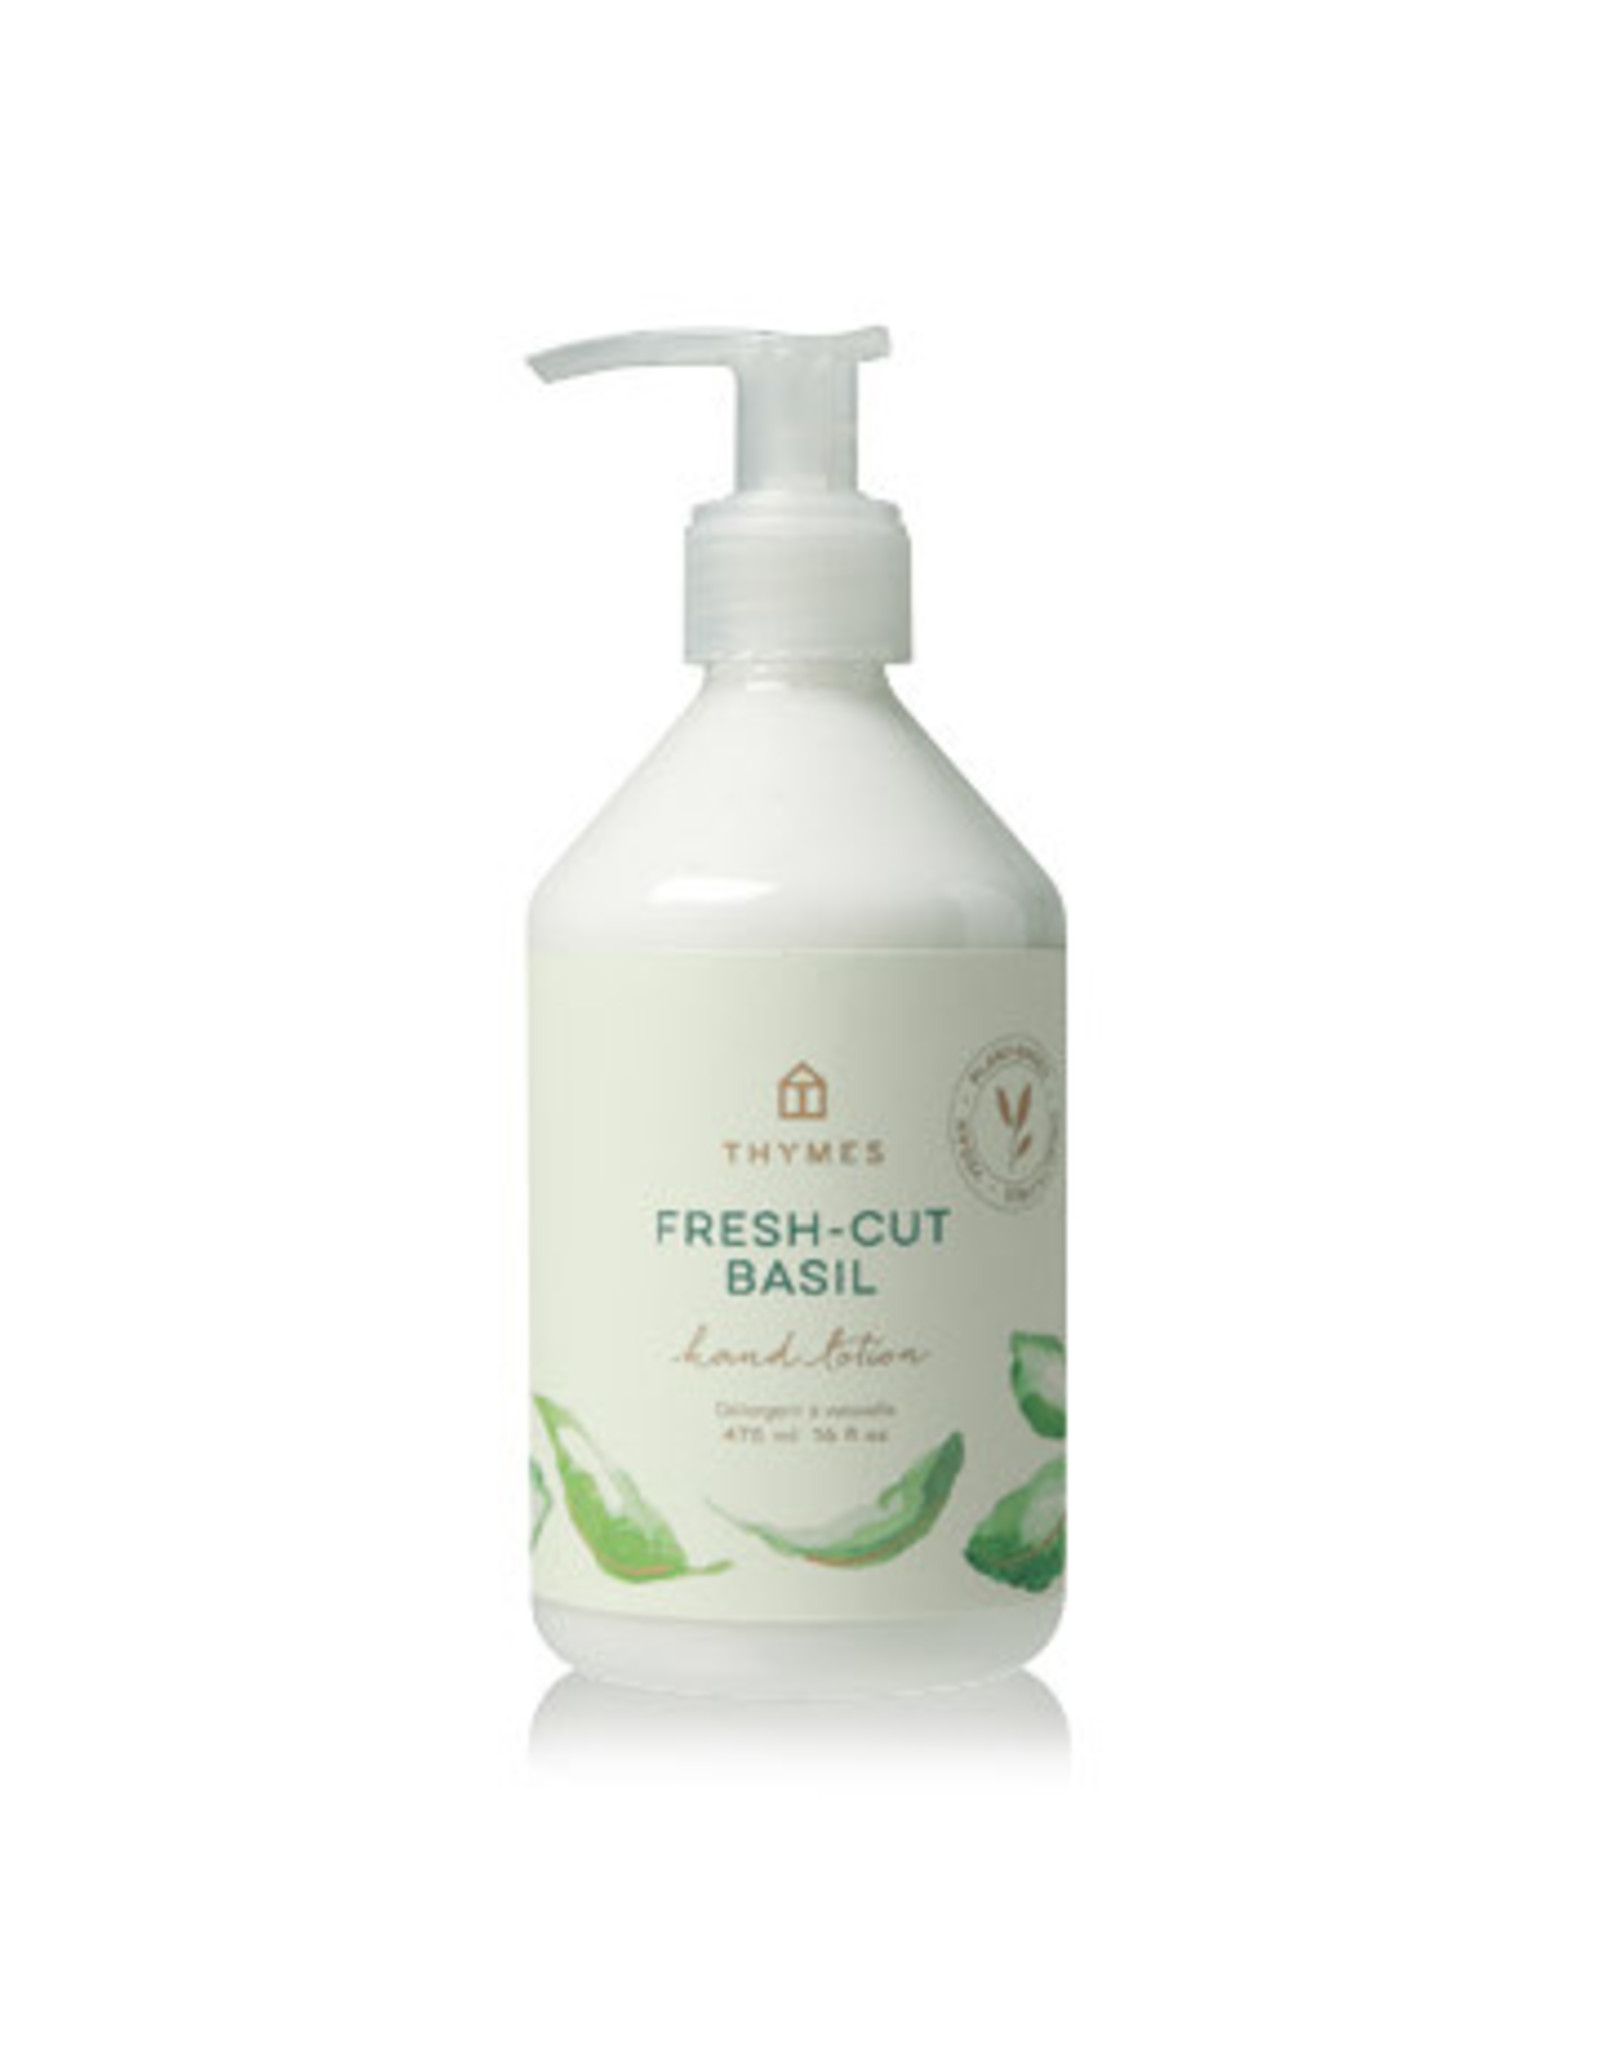 Thymes Fresh Cut Basil Hand Lotion 9oz